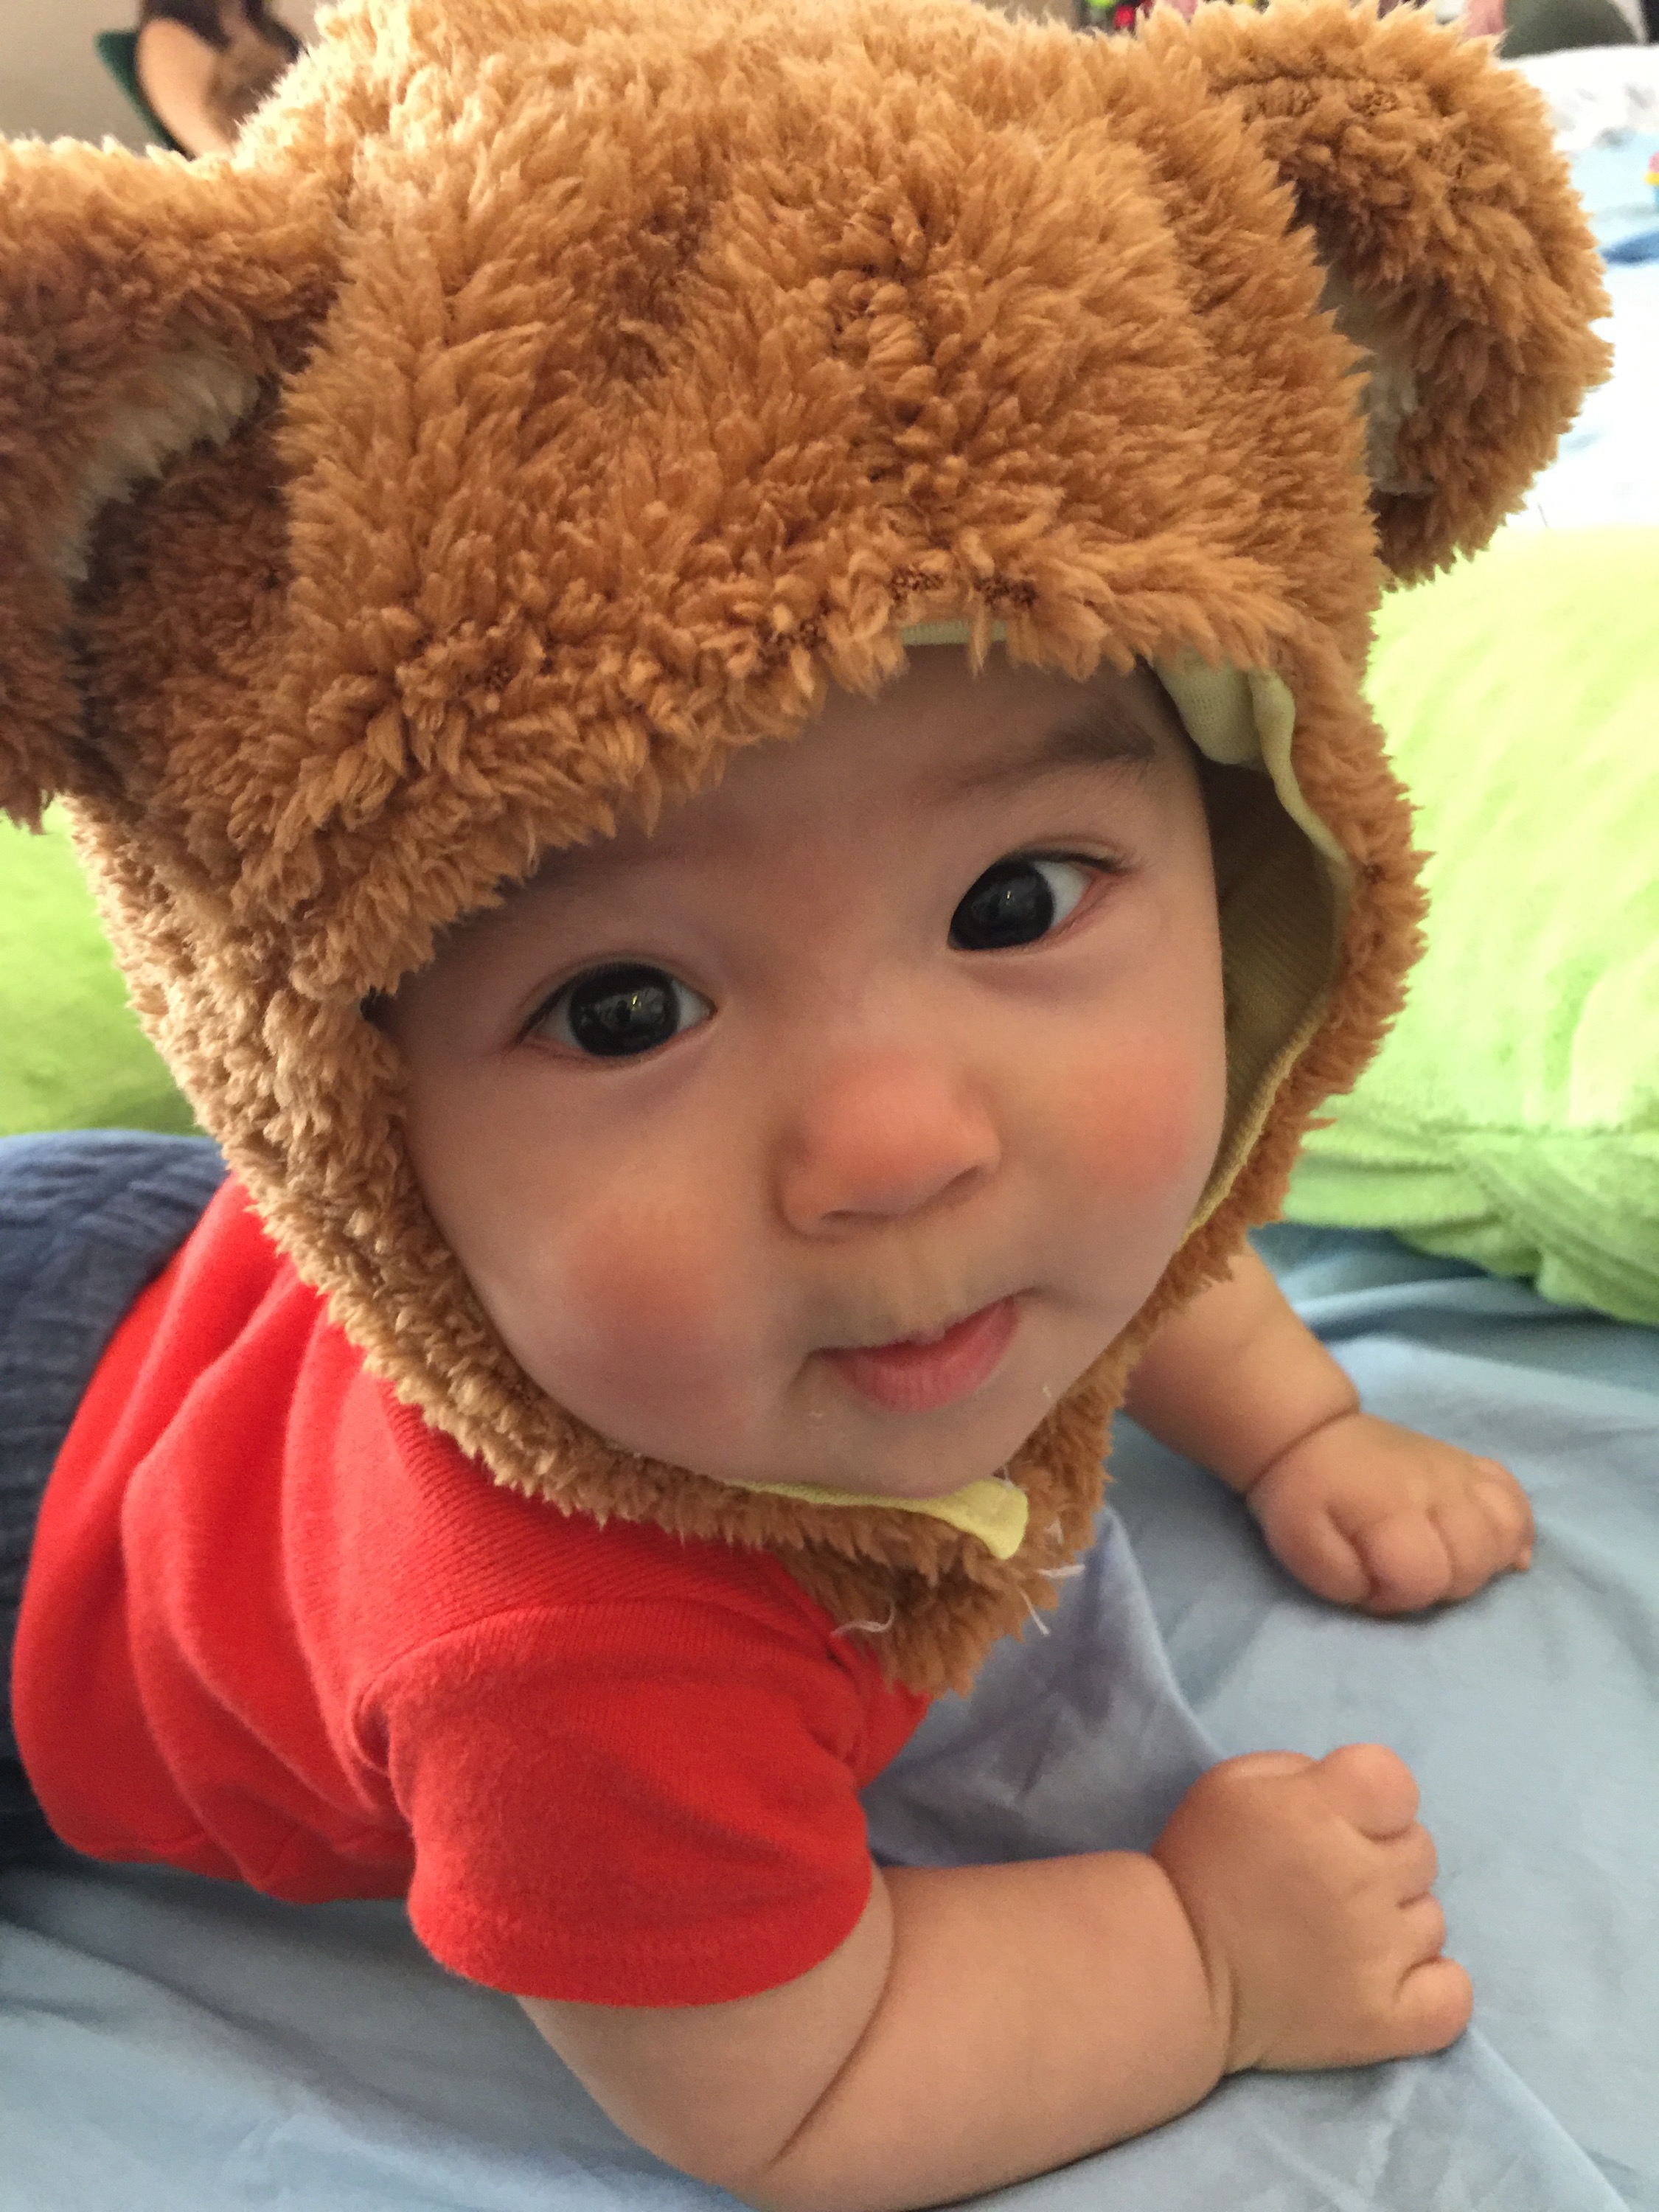 A baby with a bear head